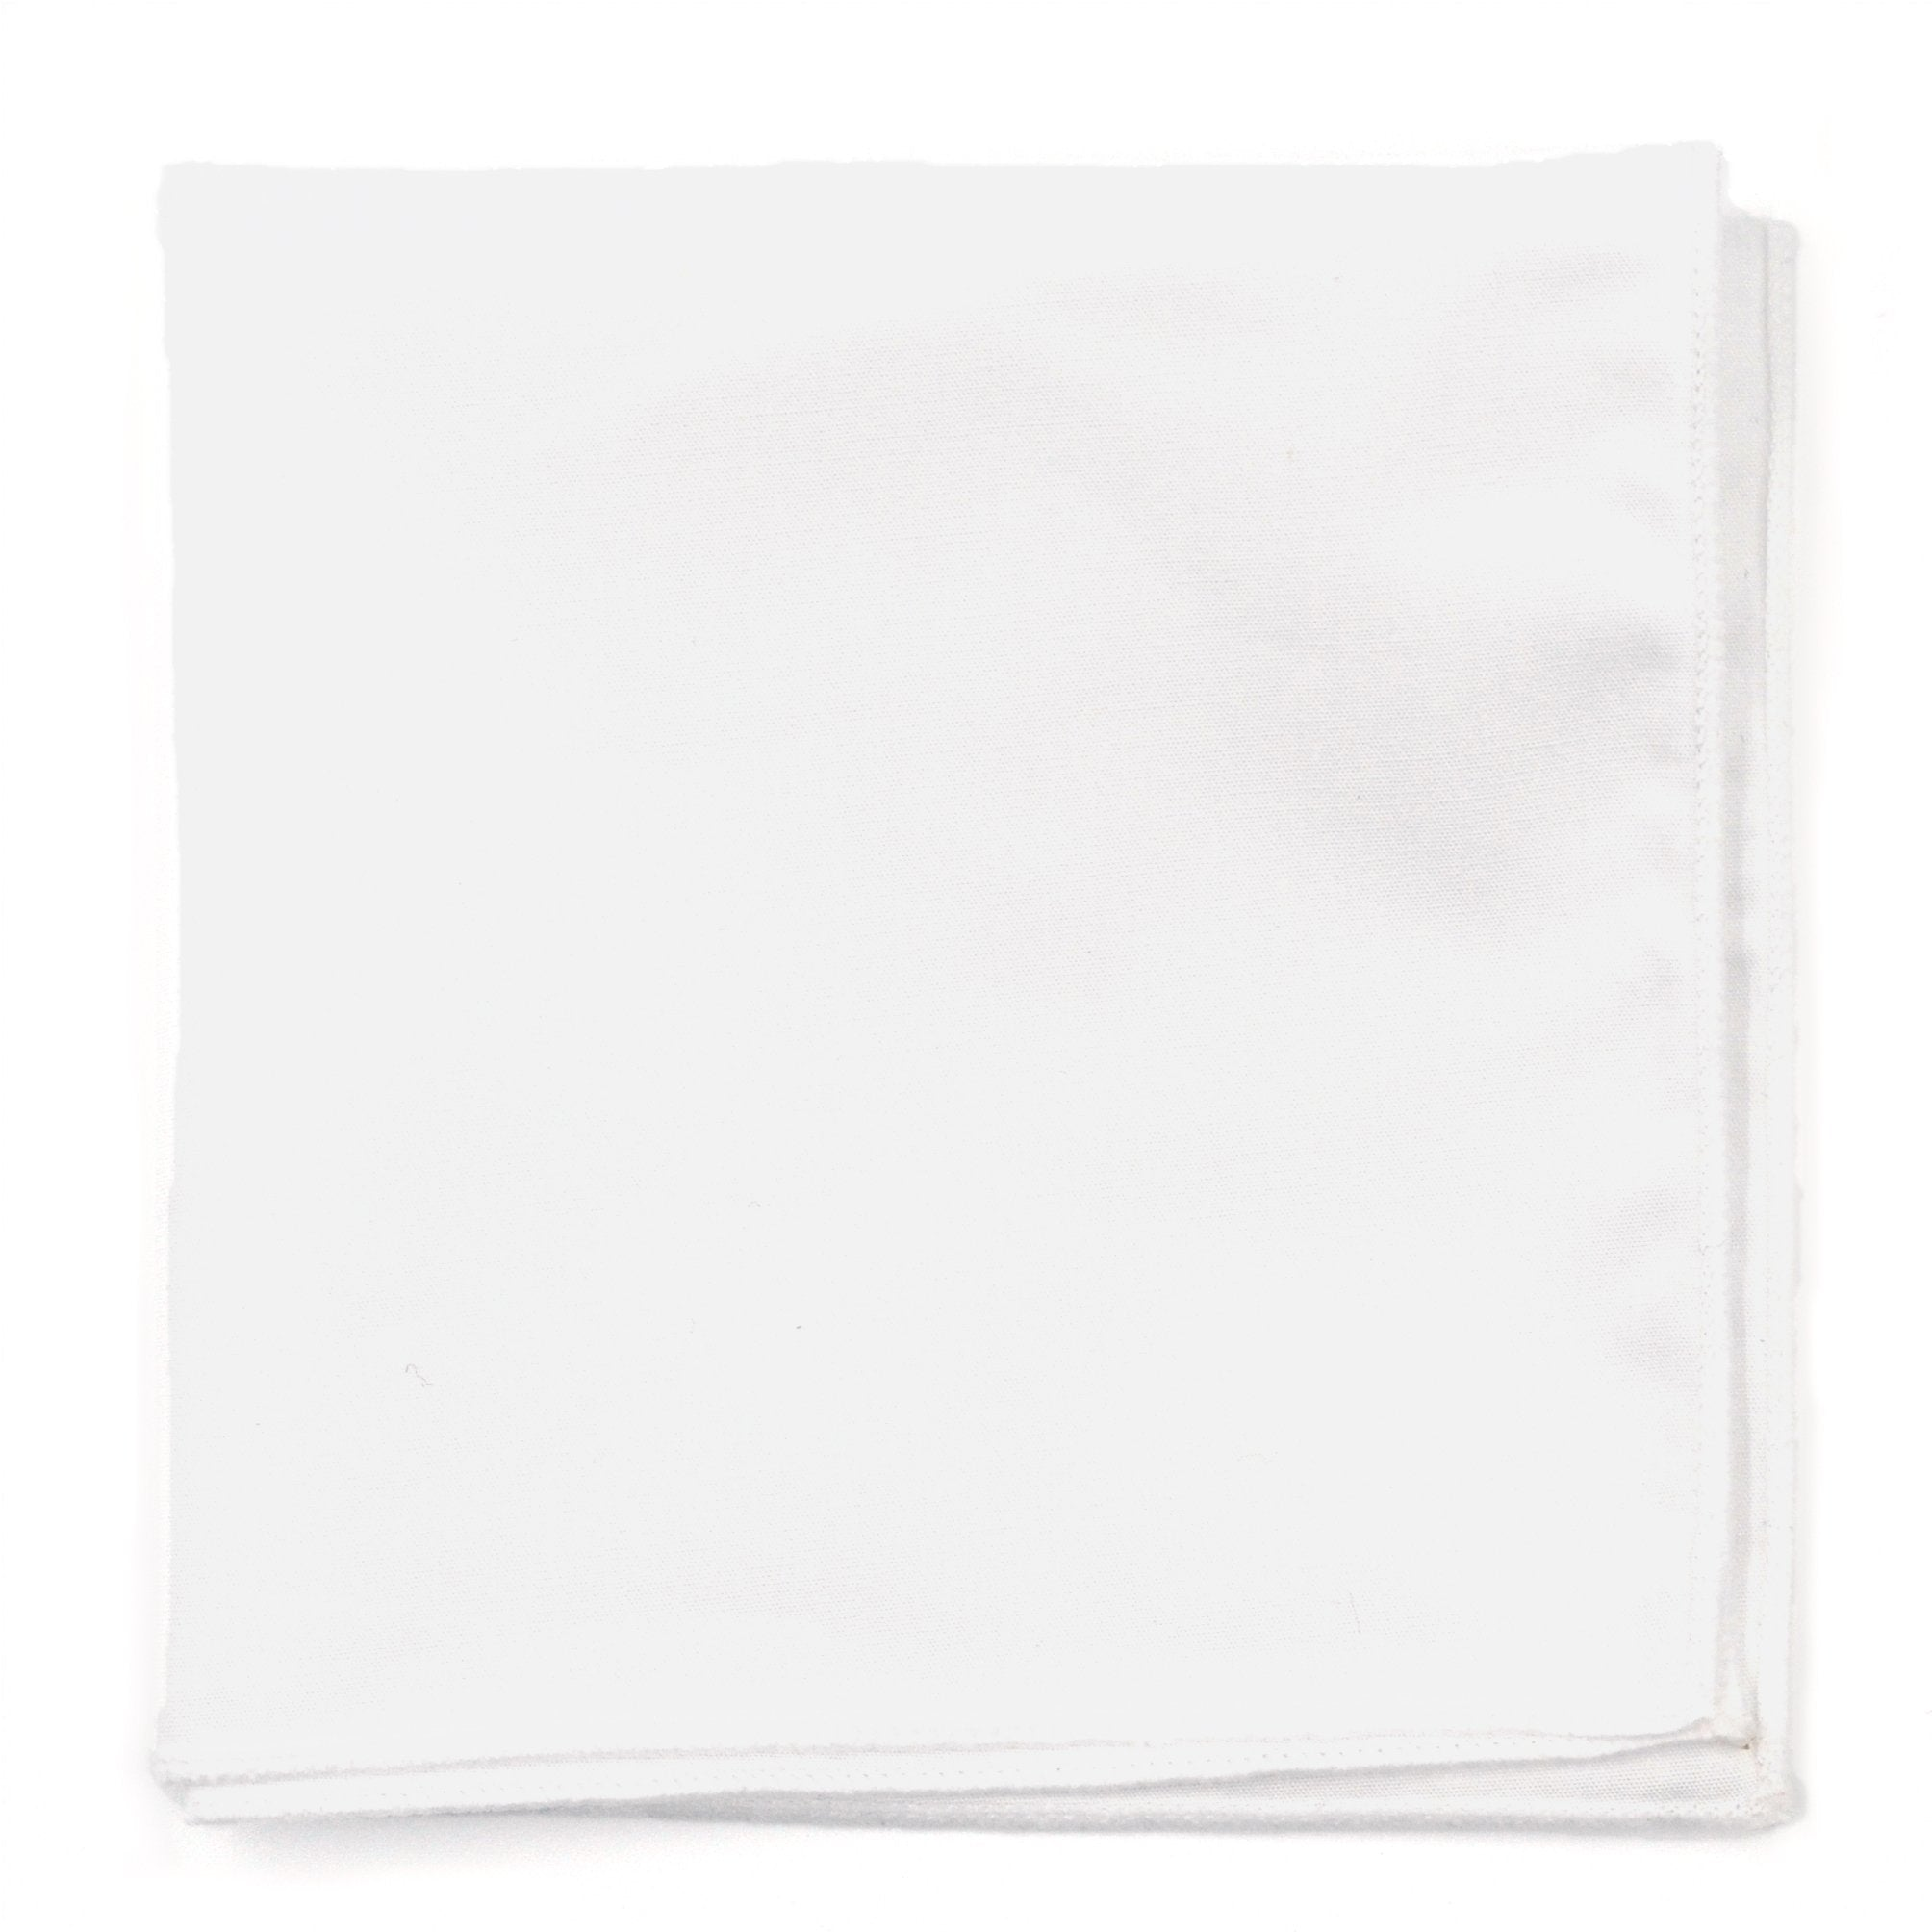 Pocket Square - White Border Pocket Square